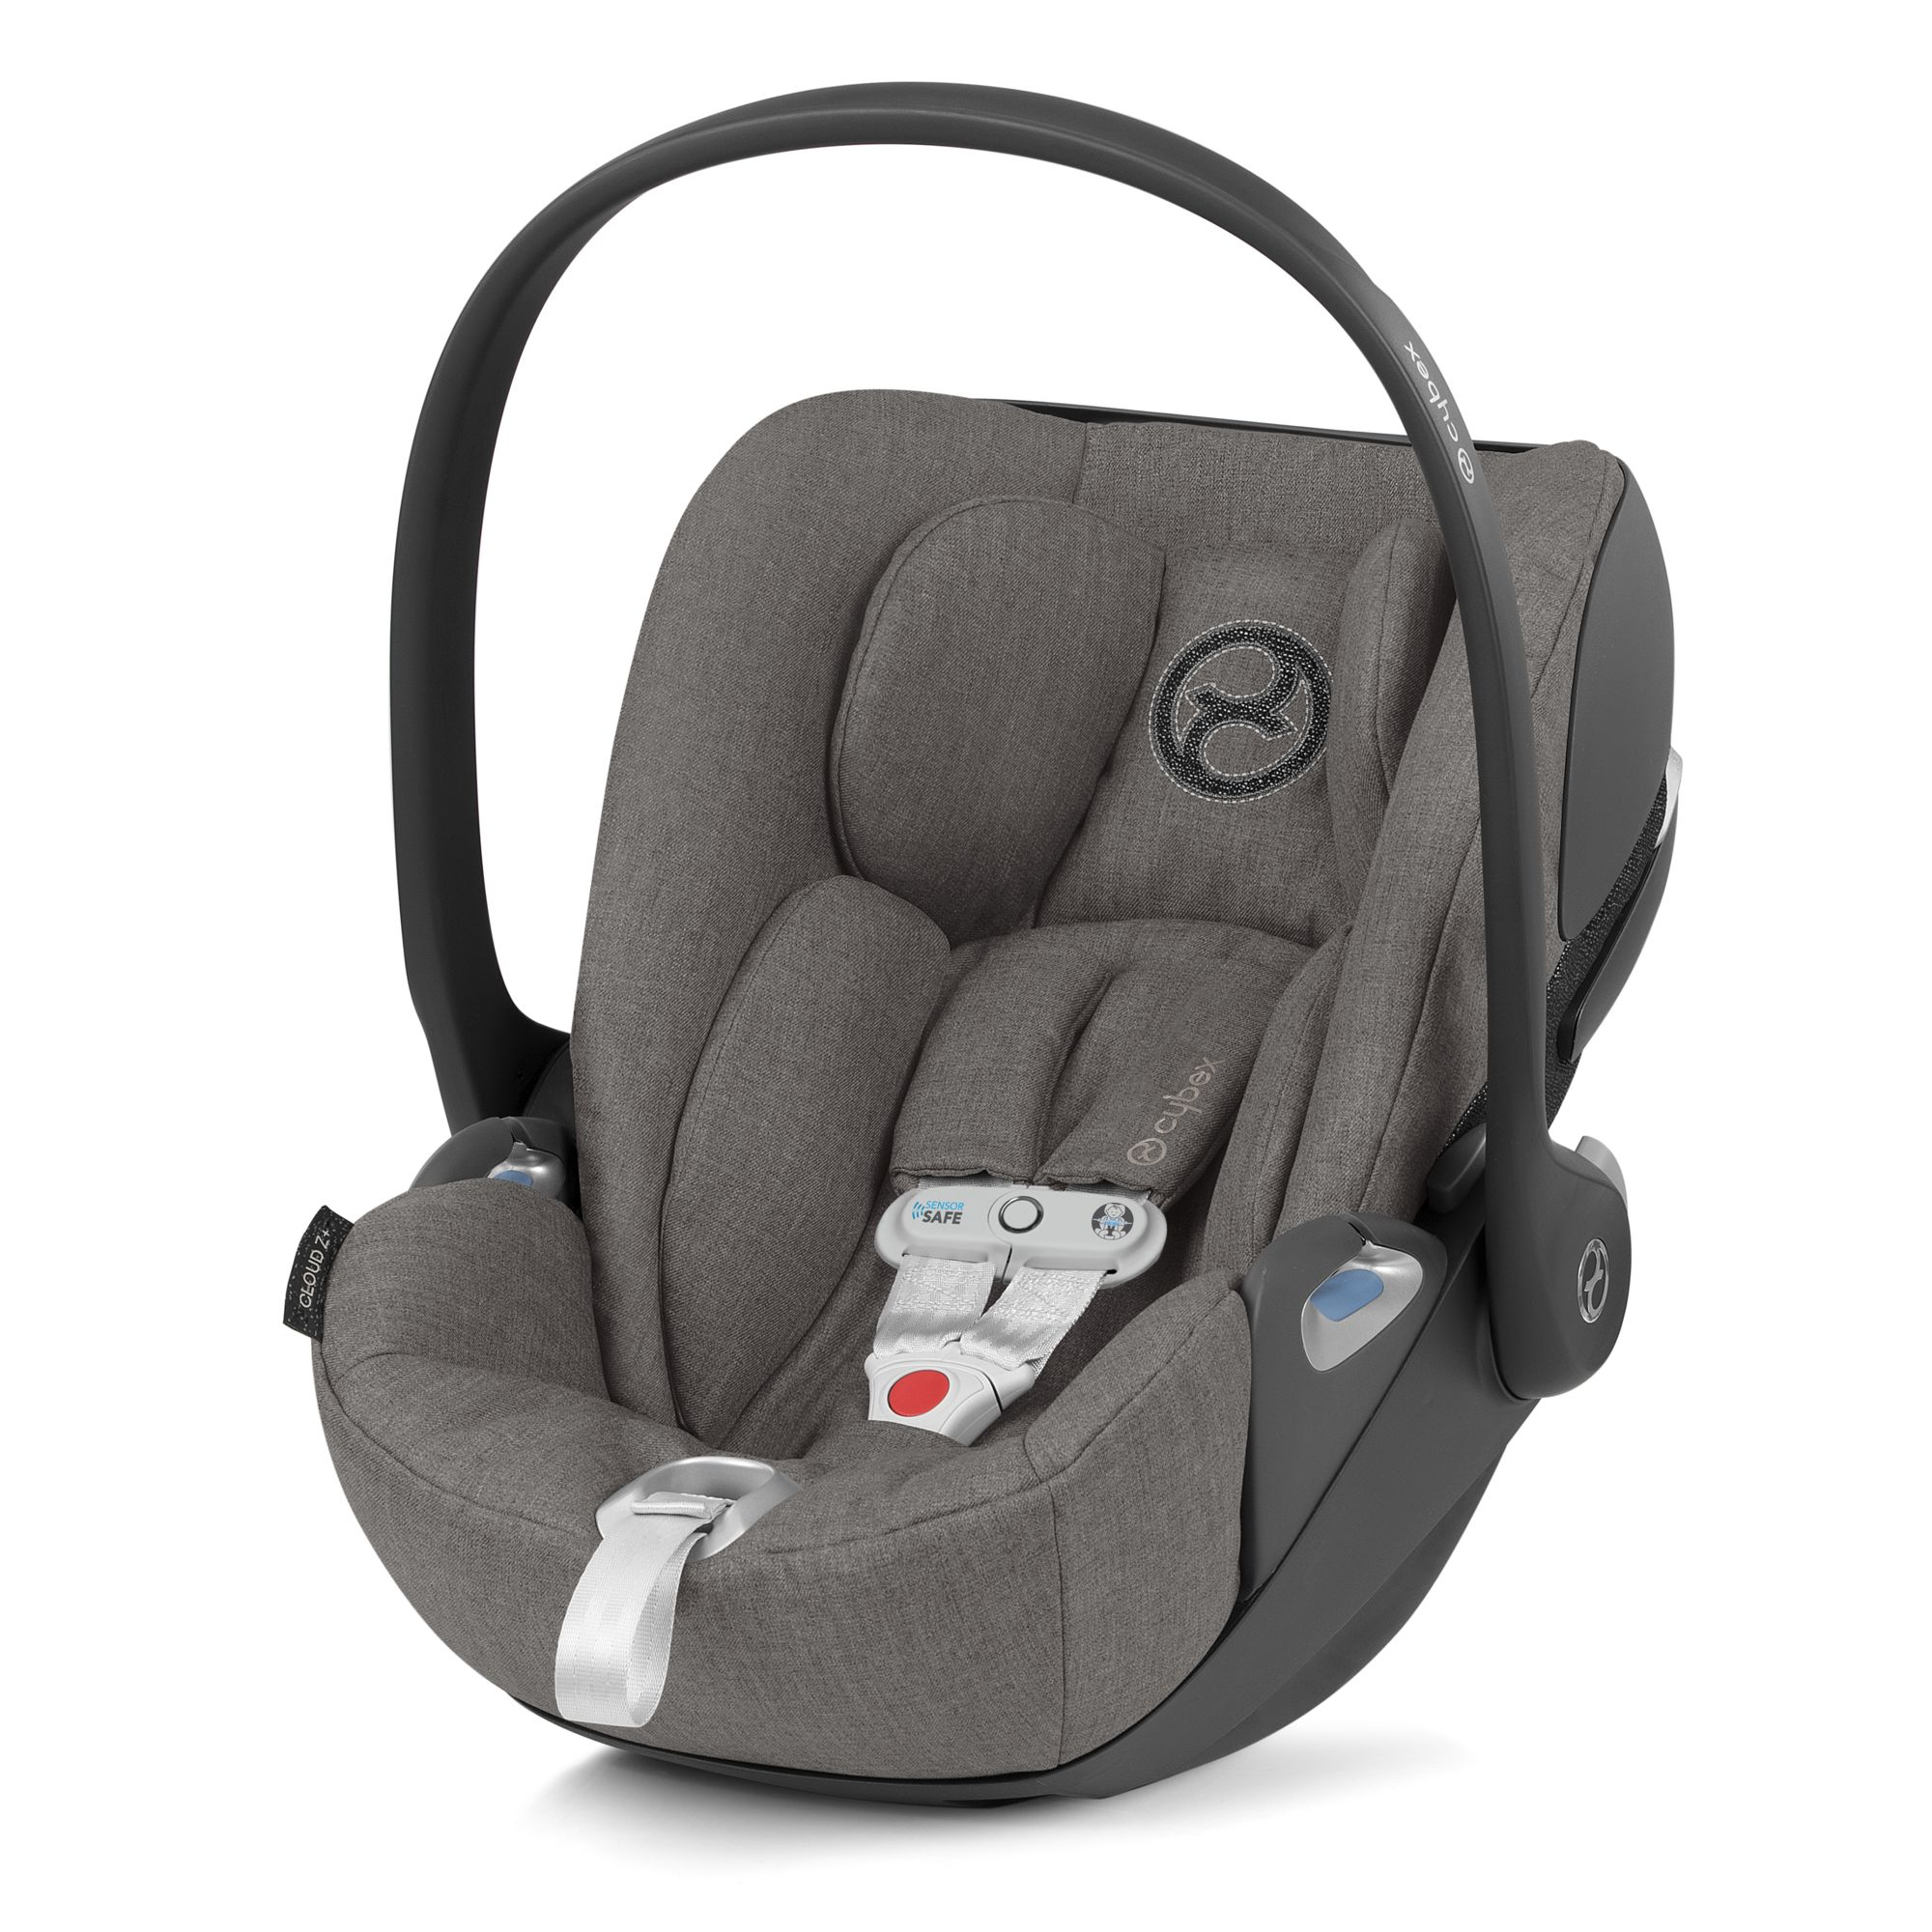 CYBEX CLOUD Z I-SIZE SENSORSAFE SOHO GREY 2021